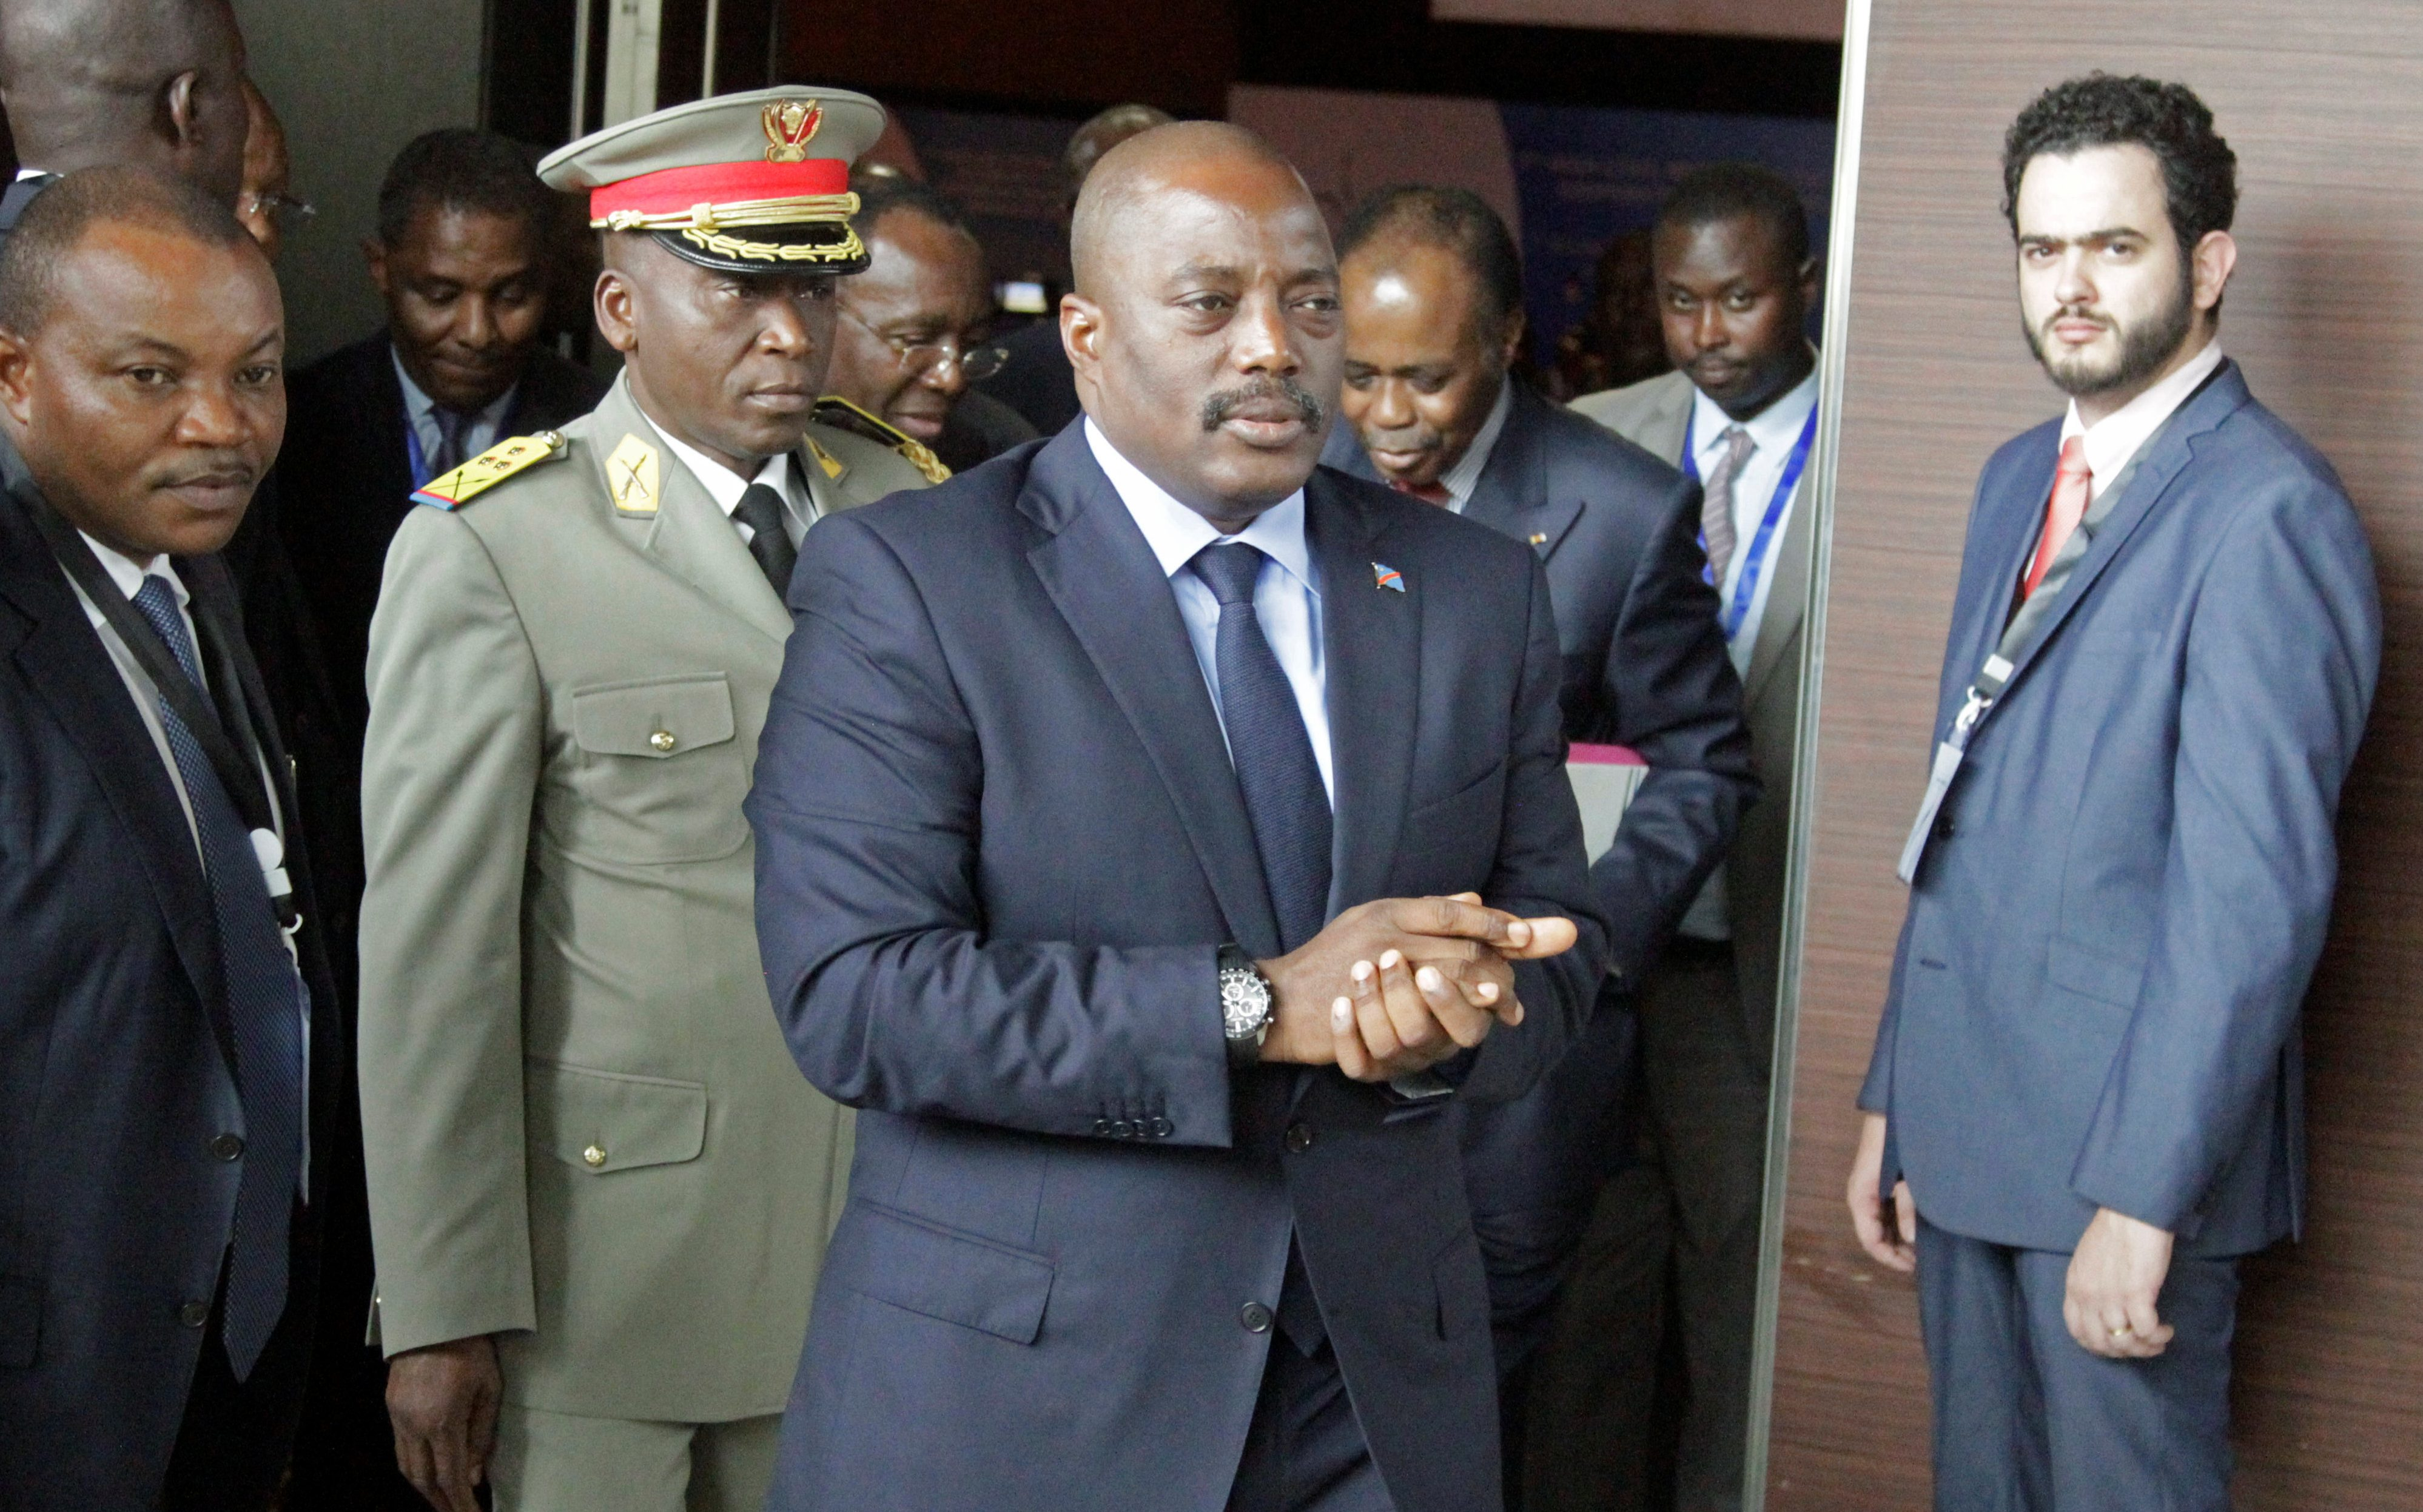 Democratic Republic of Congo's President Joseph Kabila arrives for a southern and central African leaders' meeting to discuss the political crisis in the Democratic Republic of Congo in Luanda, Angola, October 26, 2016.